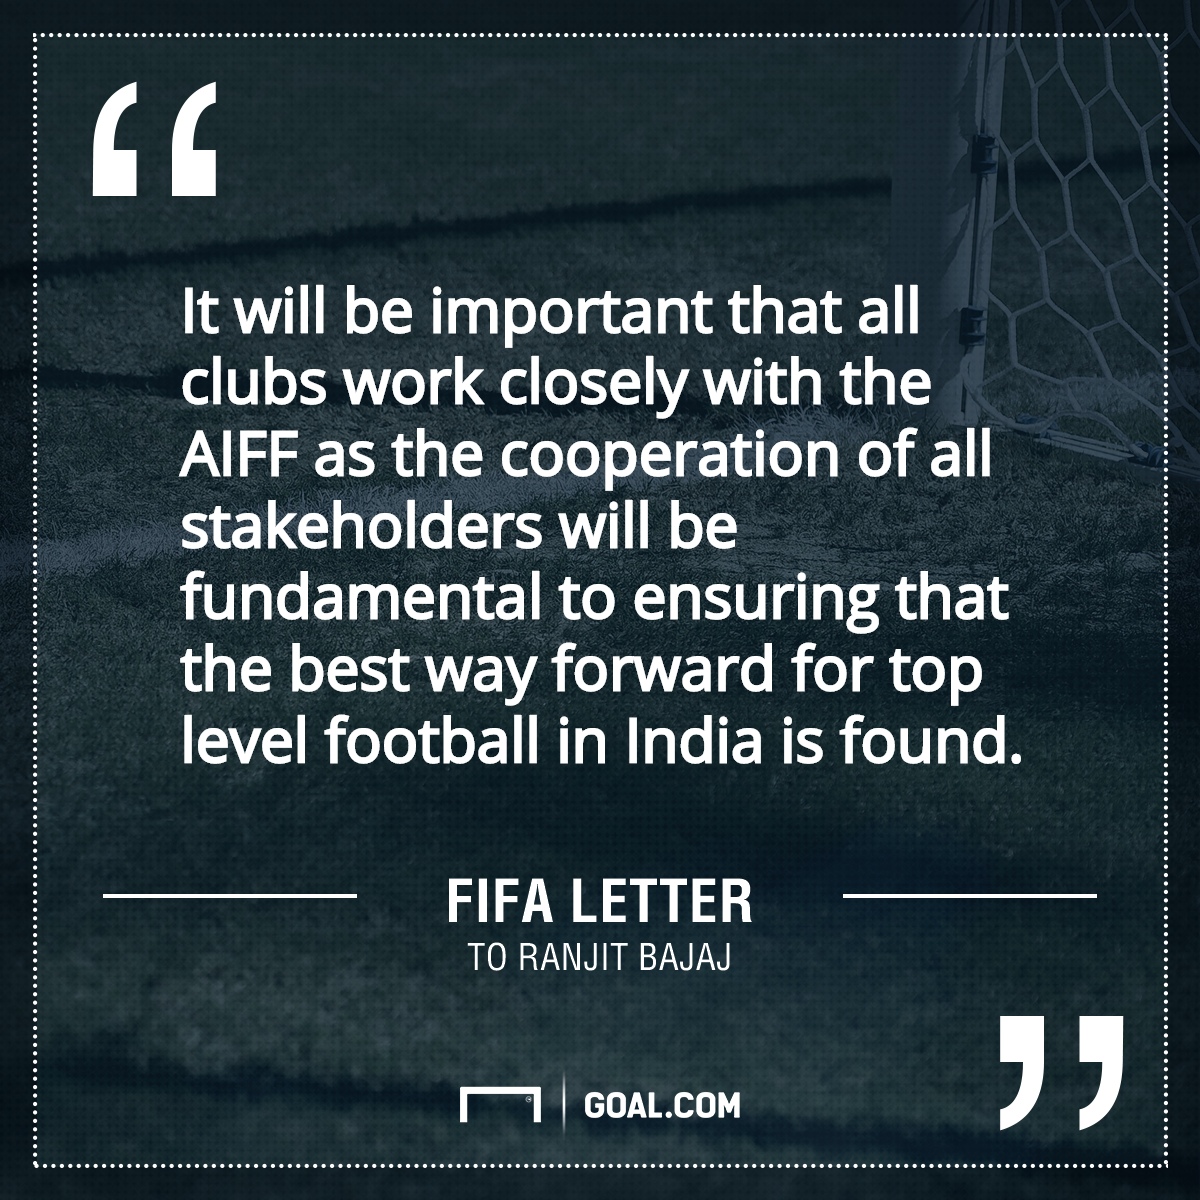 PS FIFA to AIFF